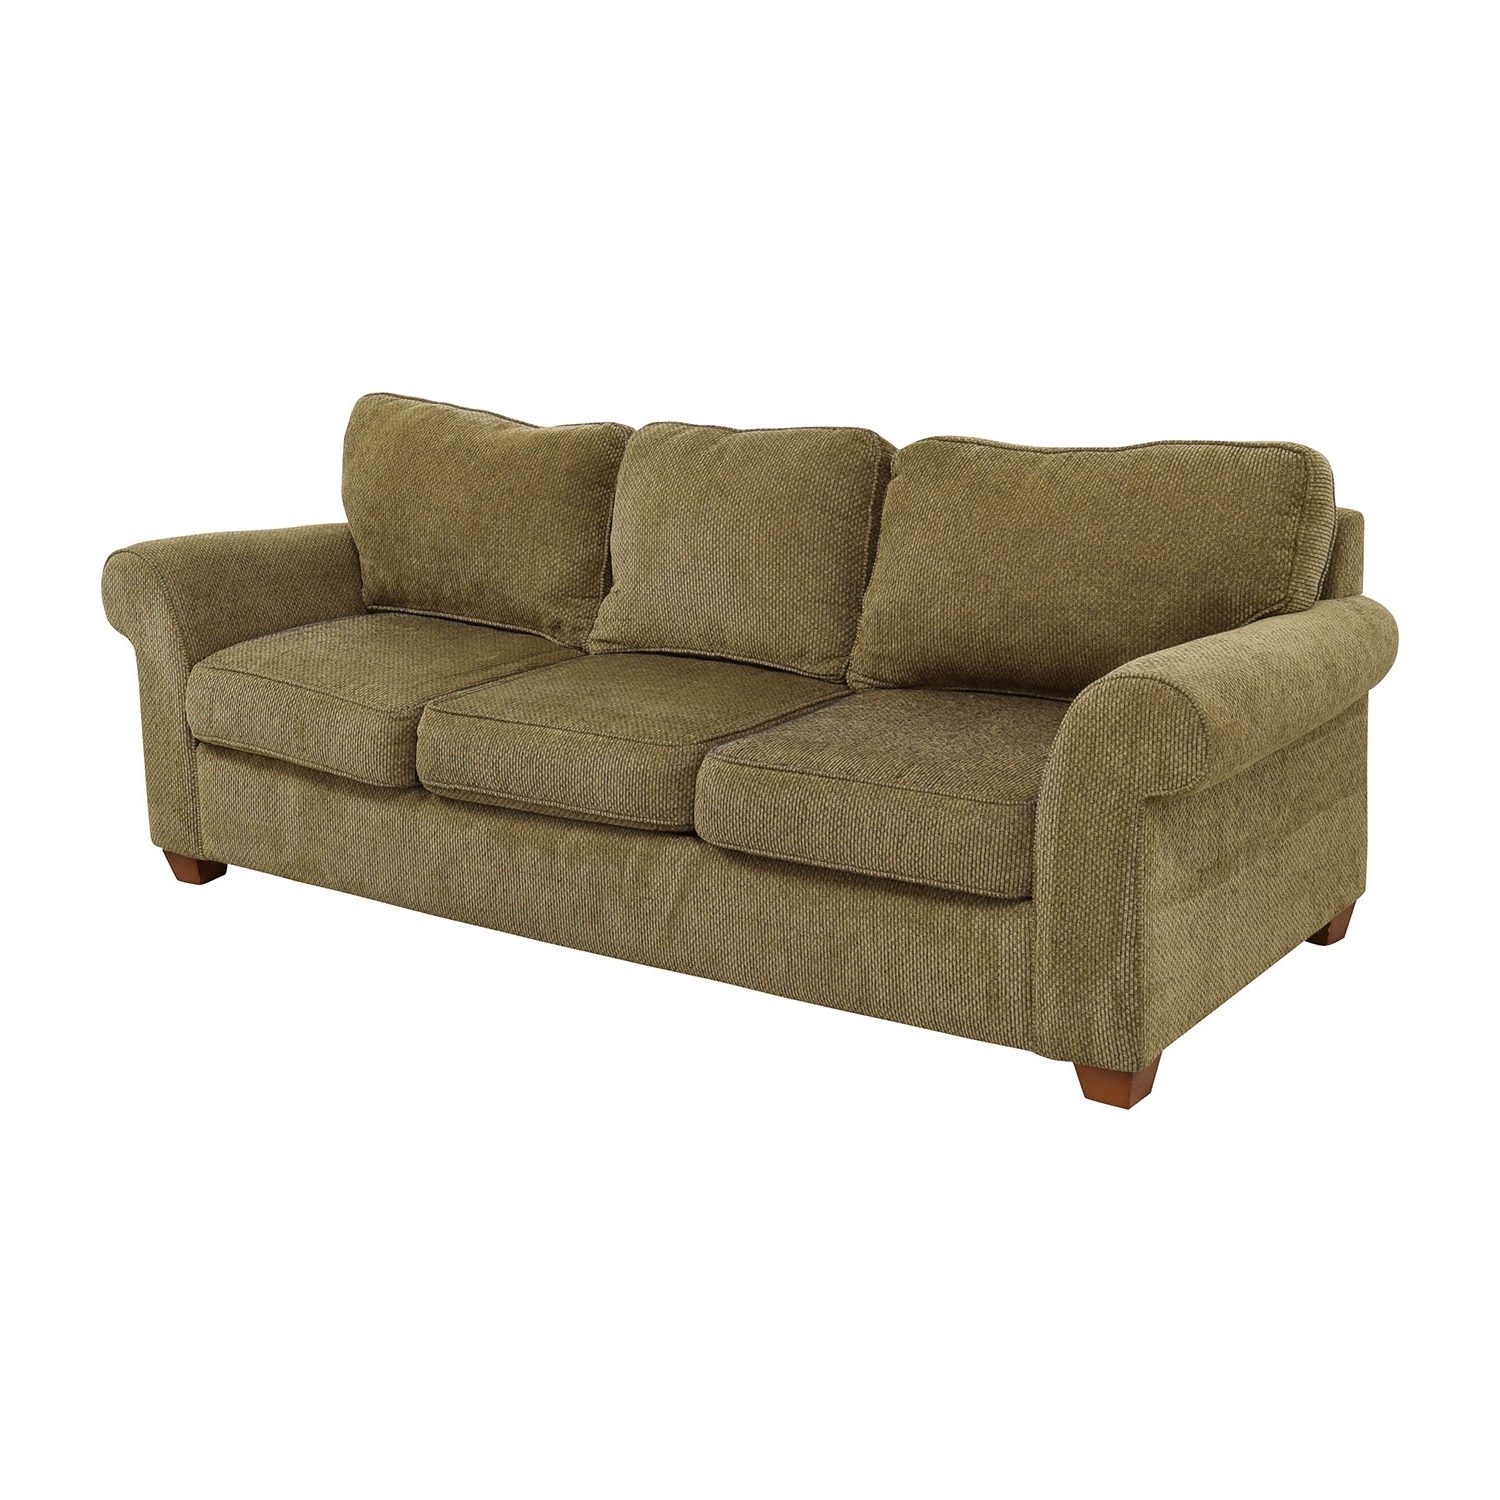 [%90% Off – Bloomingdale's Bloomingdale's Beige Tweed Fabric Sofa Pertaining To Latest Tweed Fabric Sofas|Tweed Fabric Sofas Inside Most Up To Date 90% Off – Bloomingdale's Bloomingdale's Beige Tweed Fabric Sofa|2018 Tweed Fabric Sofas In 90% Off – Bloomingdale's Bloomingdale's Beige Tweed Fabric Sofa|Best And Newest 90% Off – Bloomingdale's Bloomingdale's Beige Tweed Fabric Sofa Intended For Tweed Fabric Sofas%] (View 1 of 15)